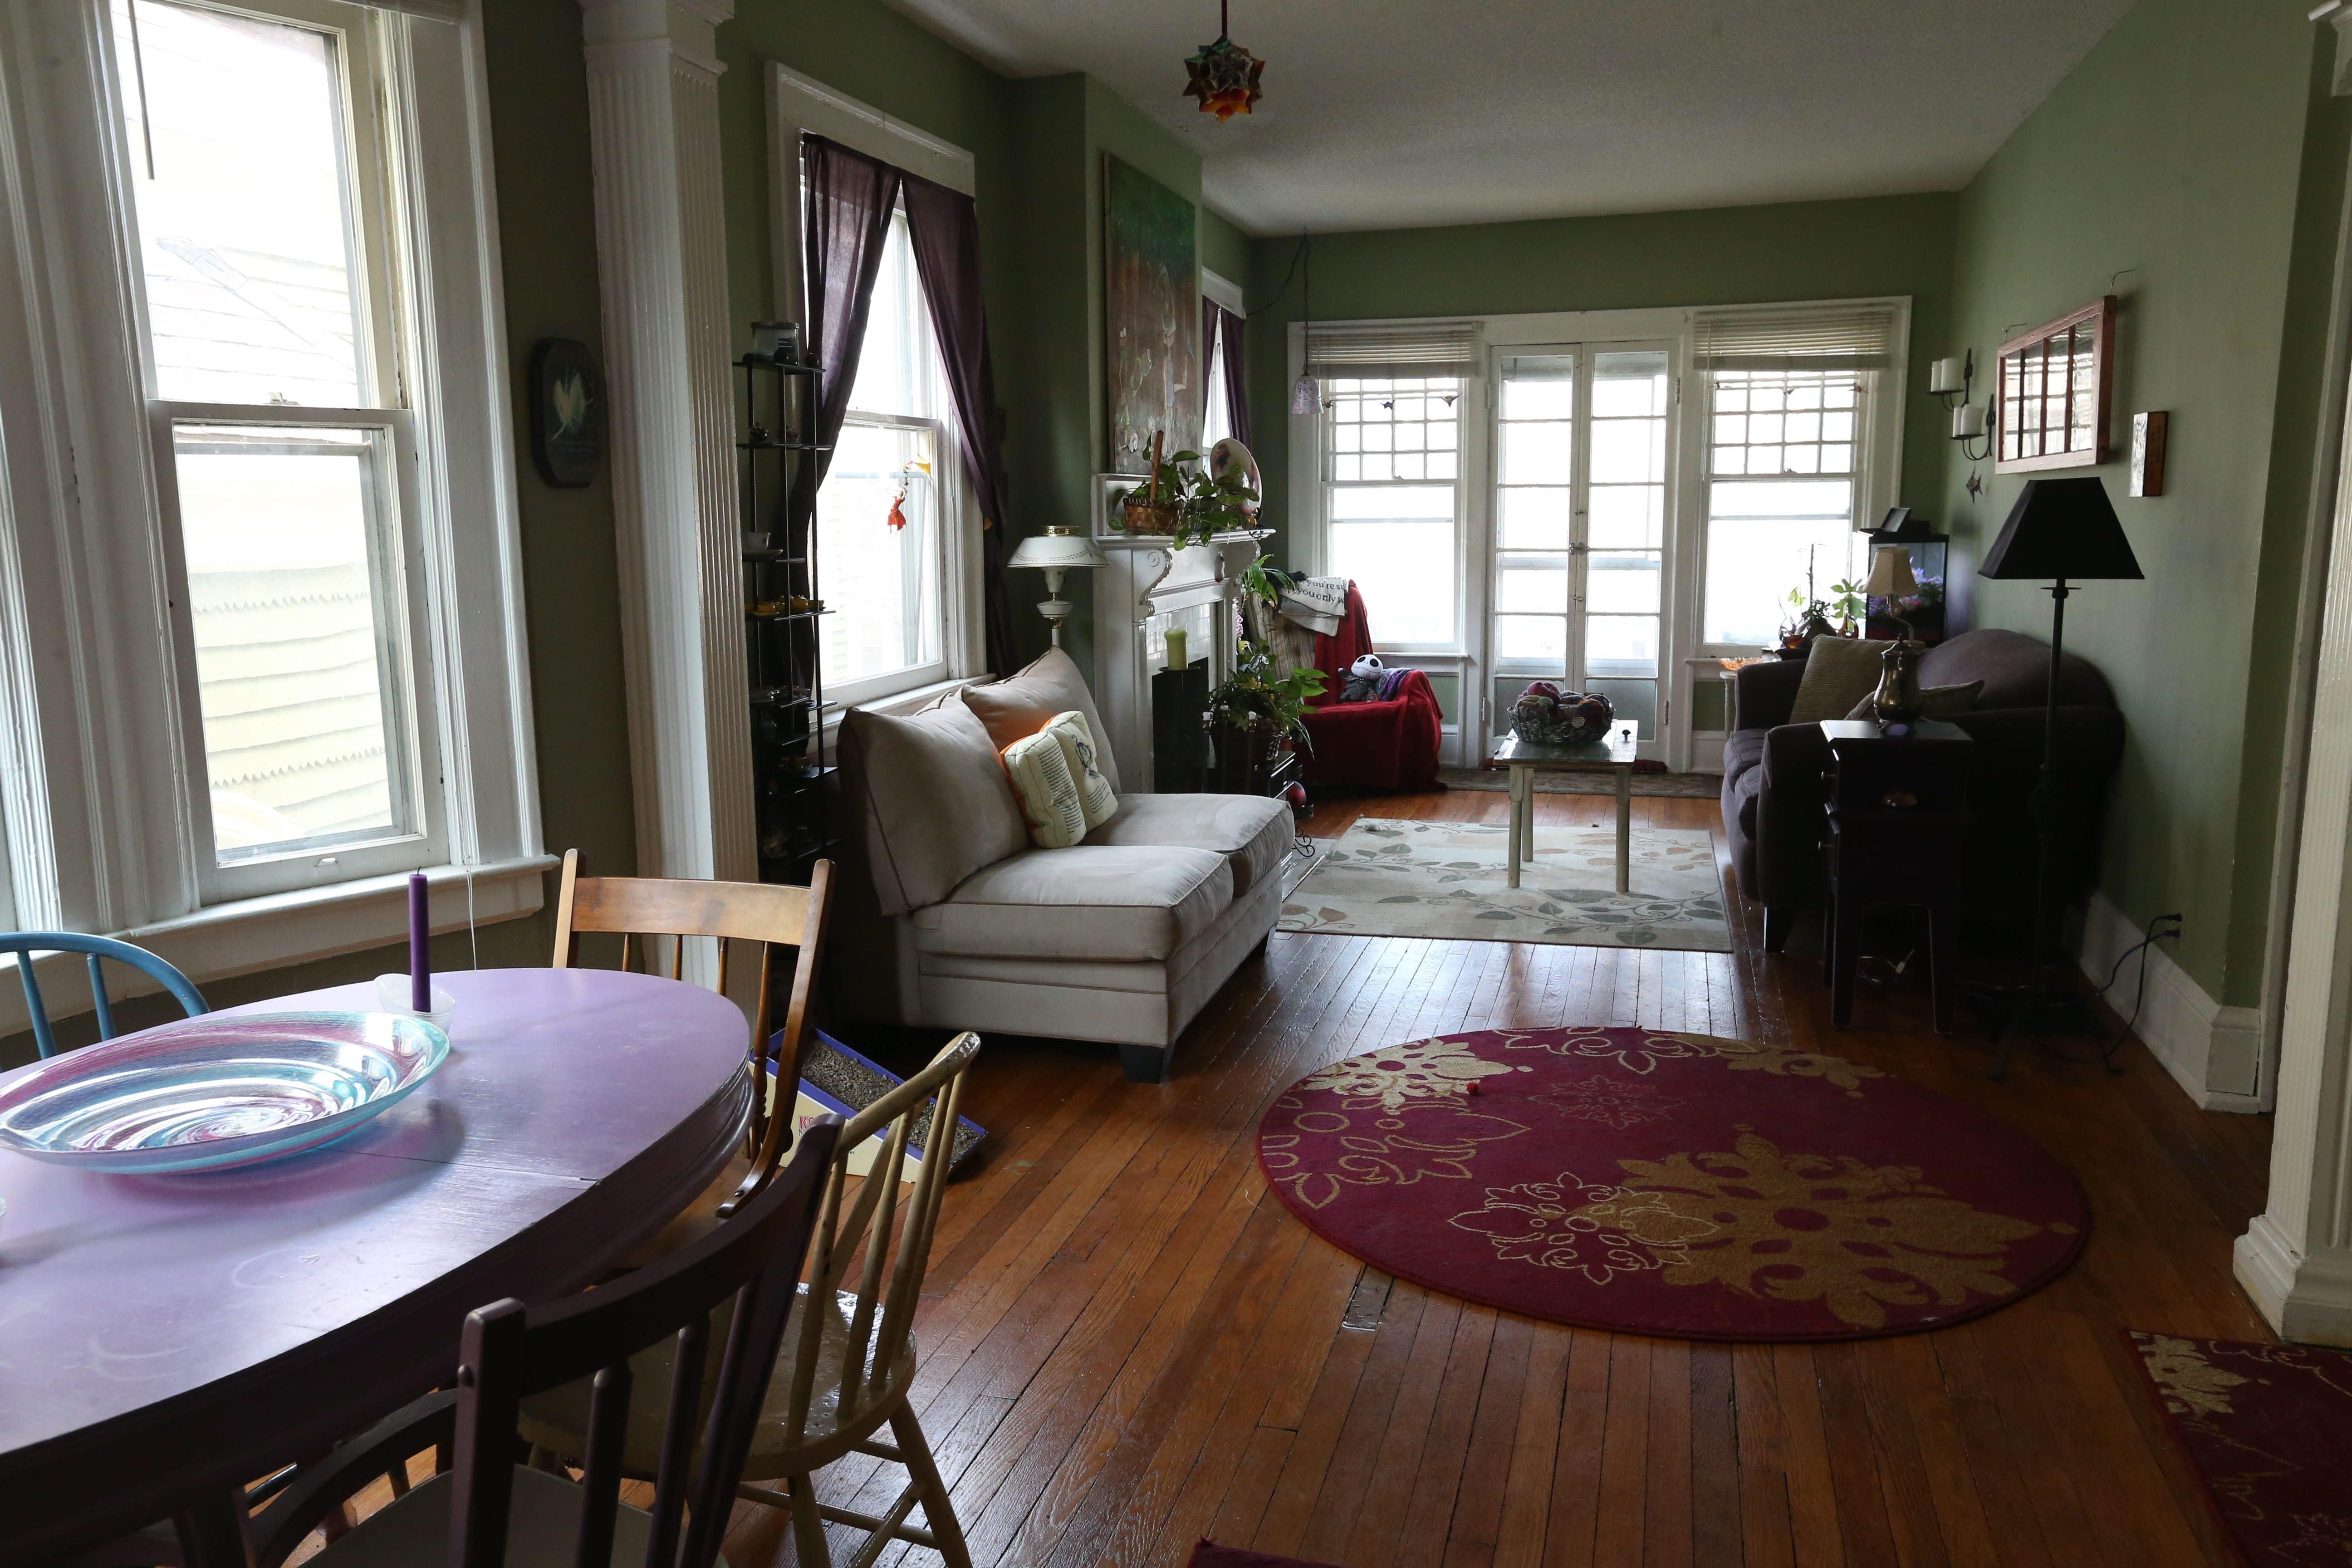 Living Room Furniture For By Owner The Elmwood Village Apartment Of Shop Owner Therese Deutschlander